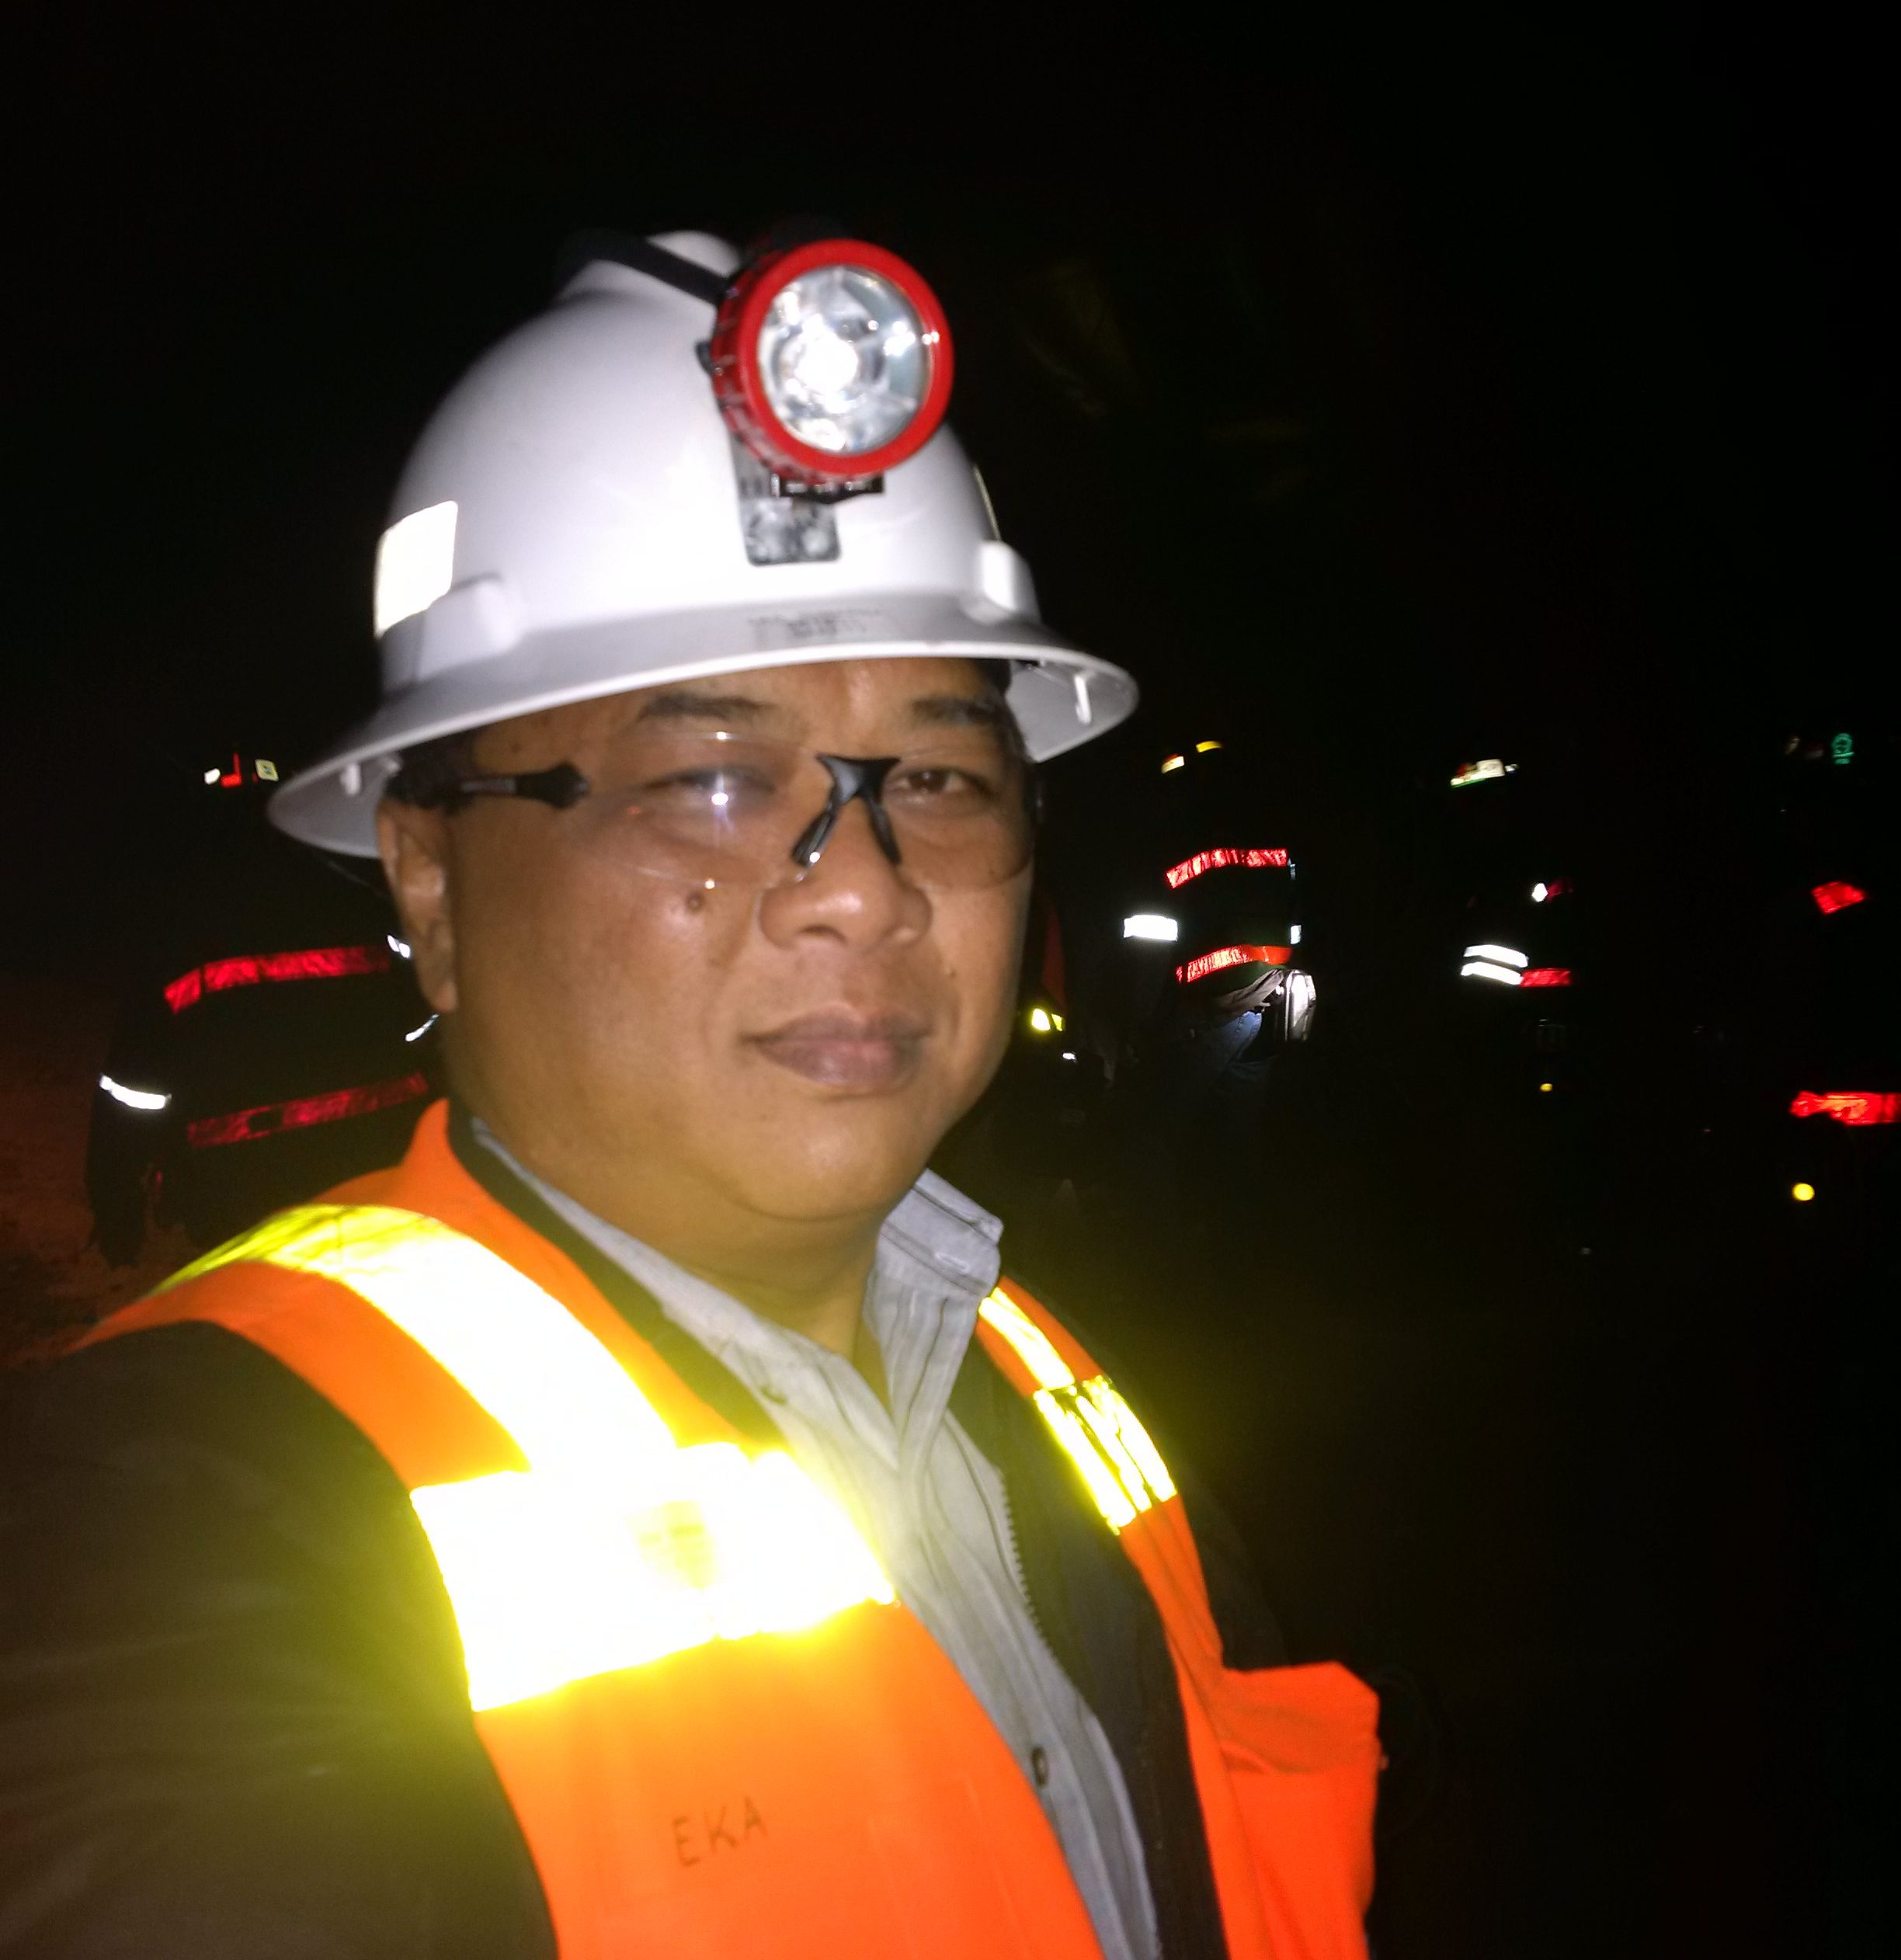 Eka Sumarna – Safety Practitioner